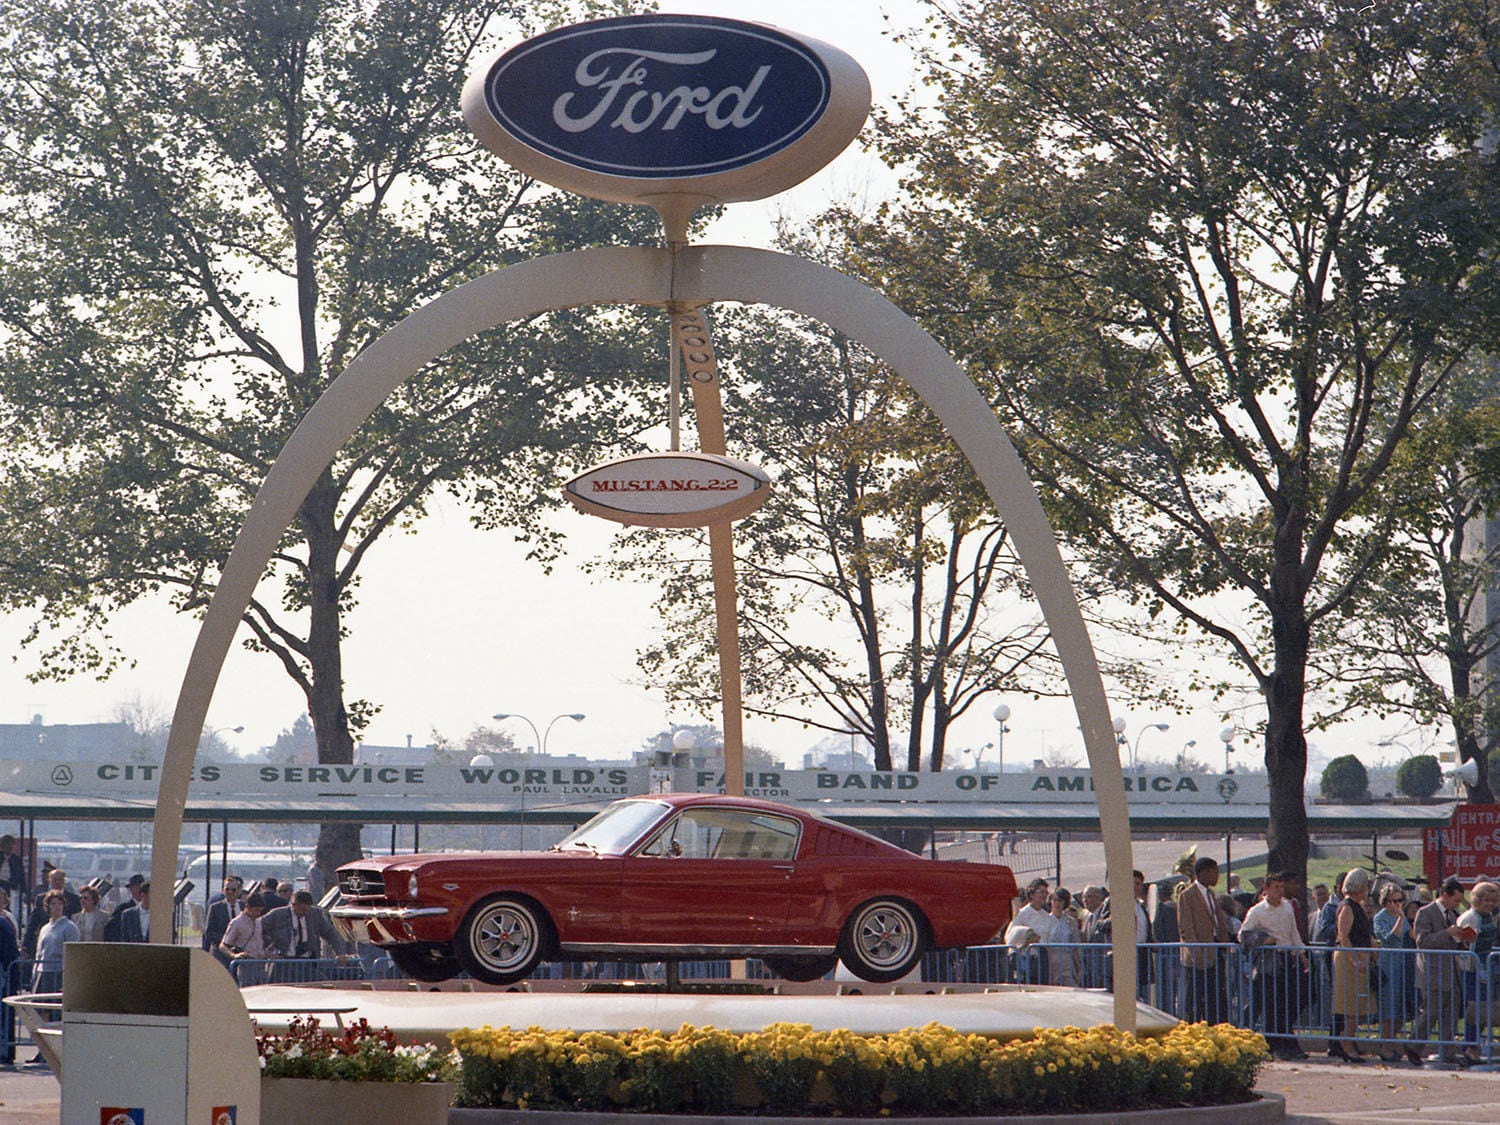 Ford Mustang celebrated its 56th birthday on April 17. What could be a better gift than to celebrate it with another year on top on the 56th Mustang Day. (Mustang at the 1964 New York World's Fair)